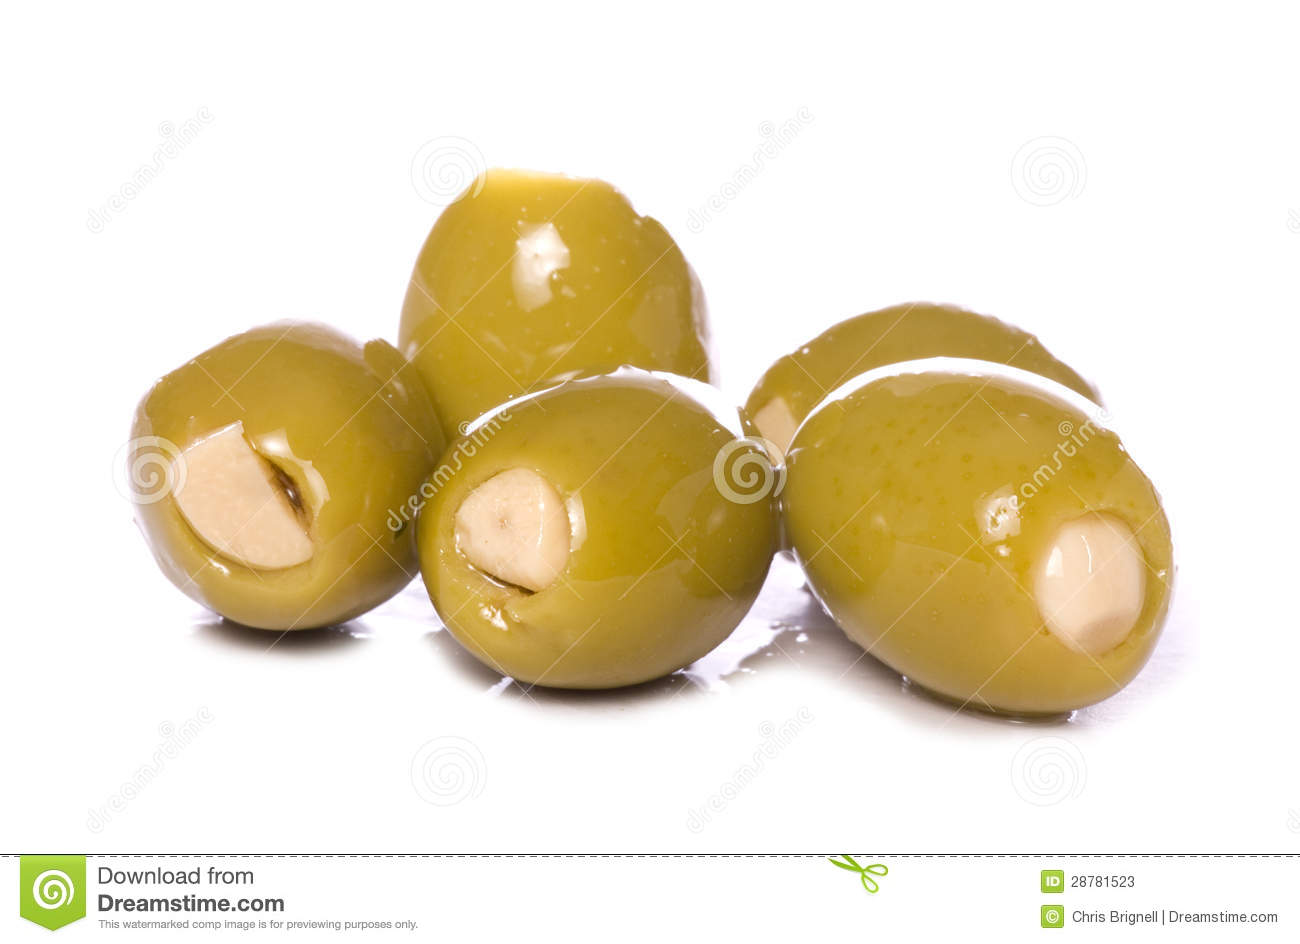 how to eat a stuffed olives